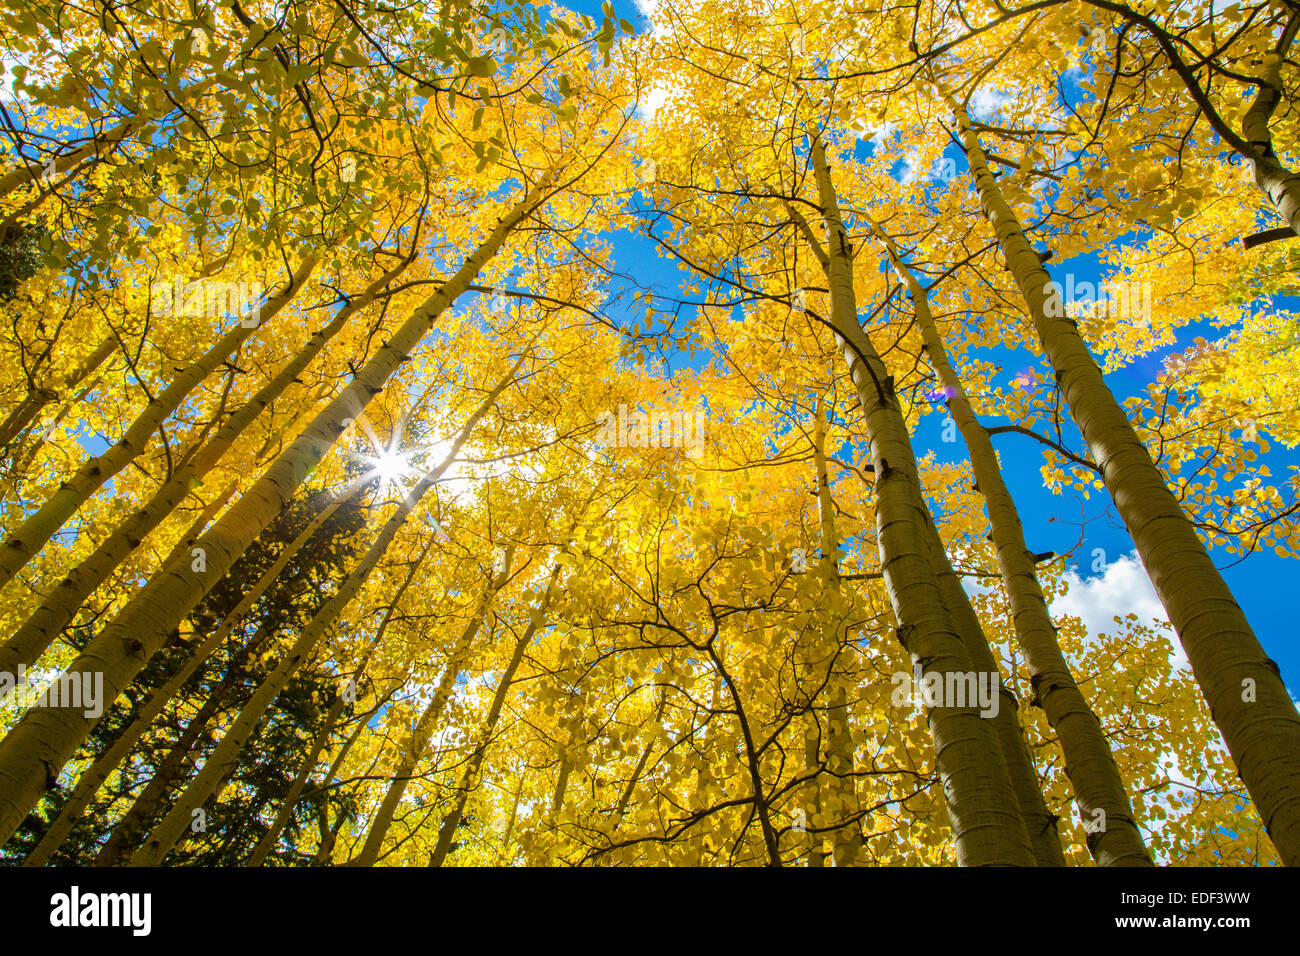 Looking up into bright yellow Aspen trees with blue sky on a fall day in Colorado - Stock Image